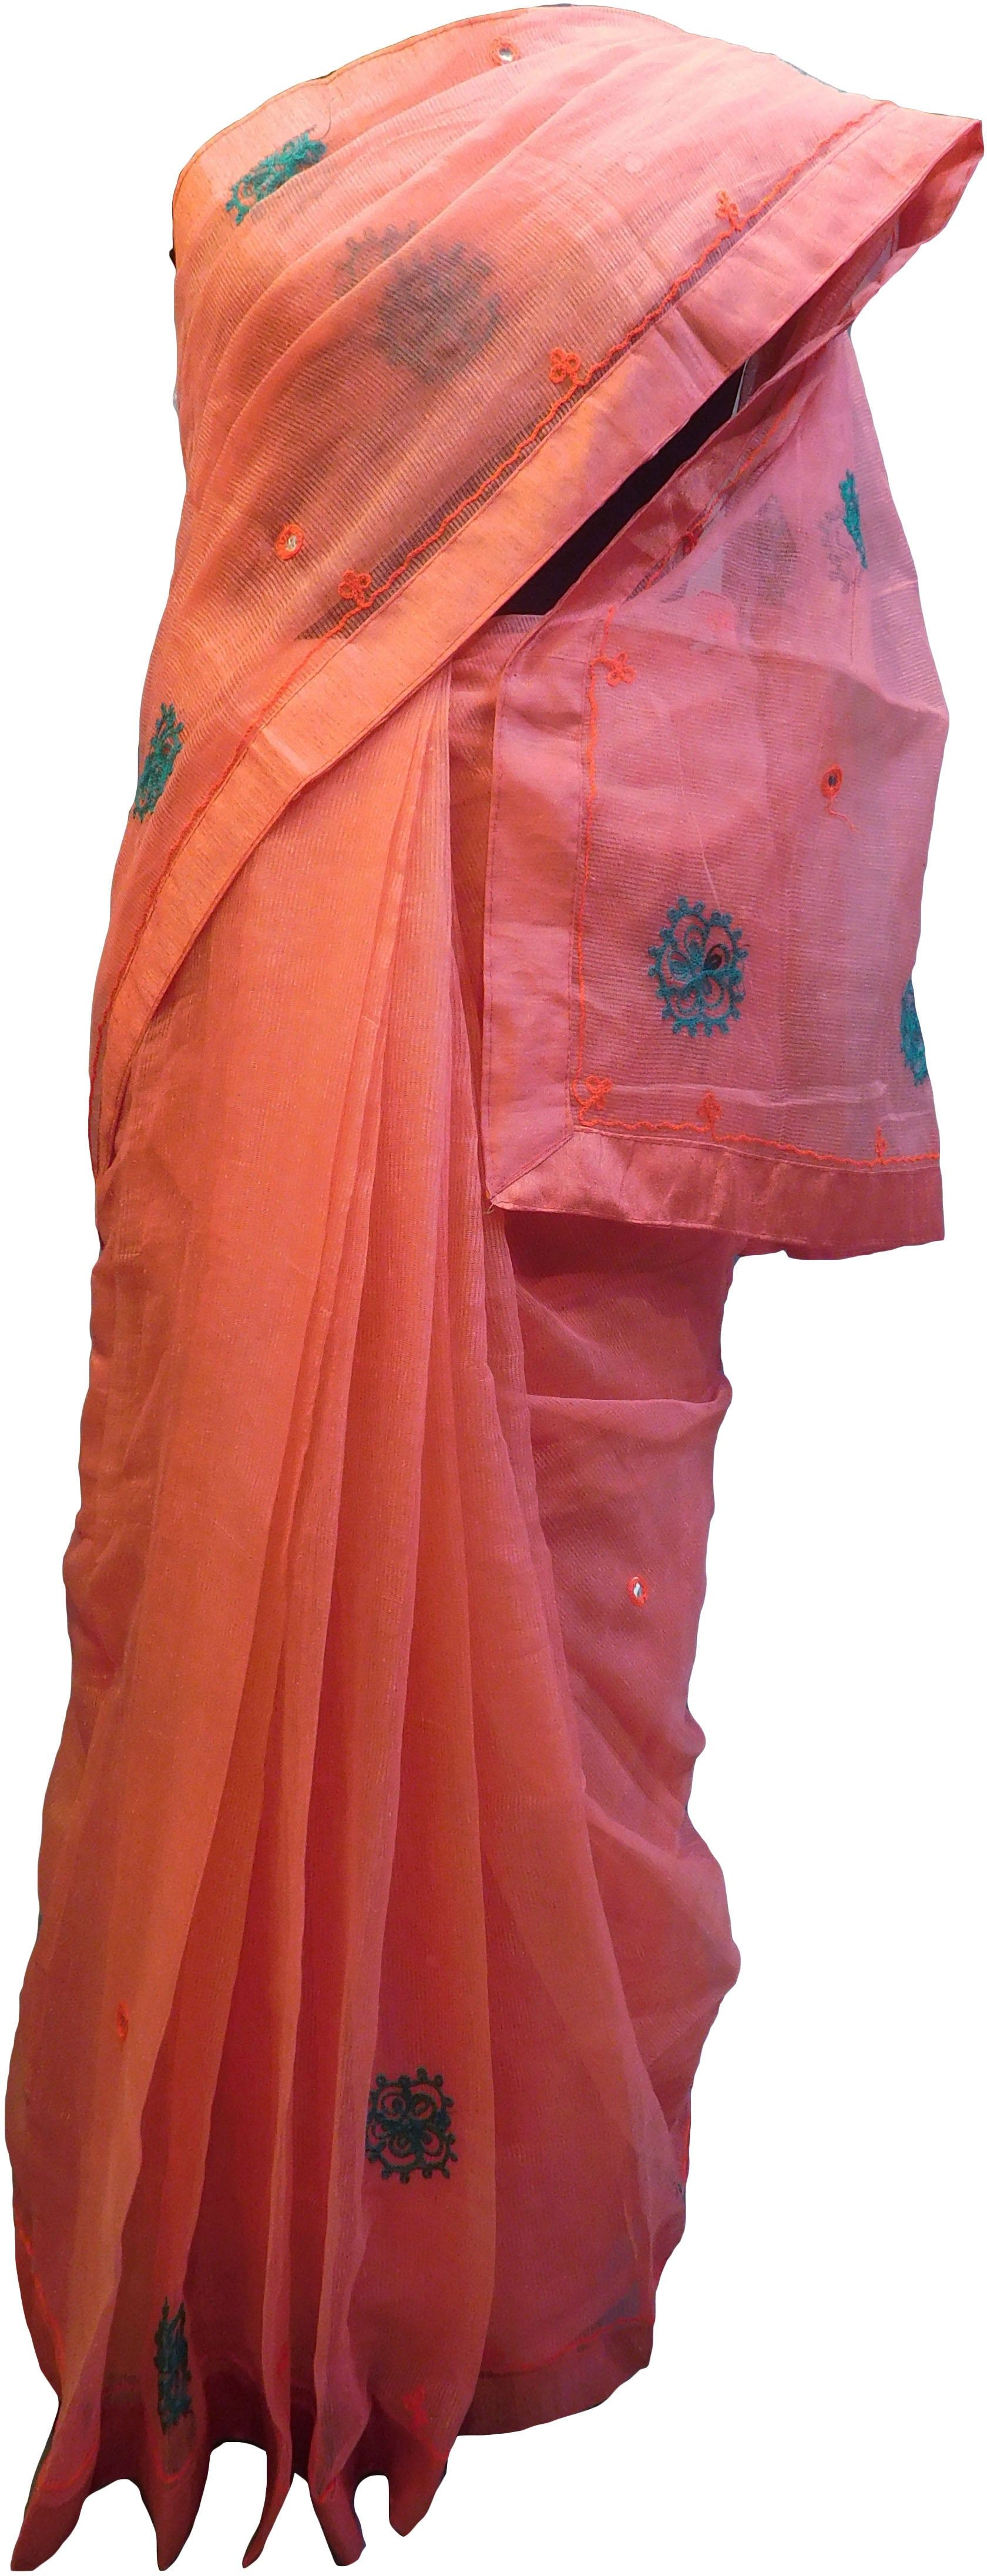 SMSAREE Peach Designer Wedding Partywear Supernet (Cotton) Thread Hand Embroidery Work Bridal Saree Sari With Blouse Piece F024